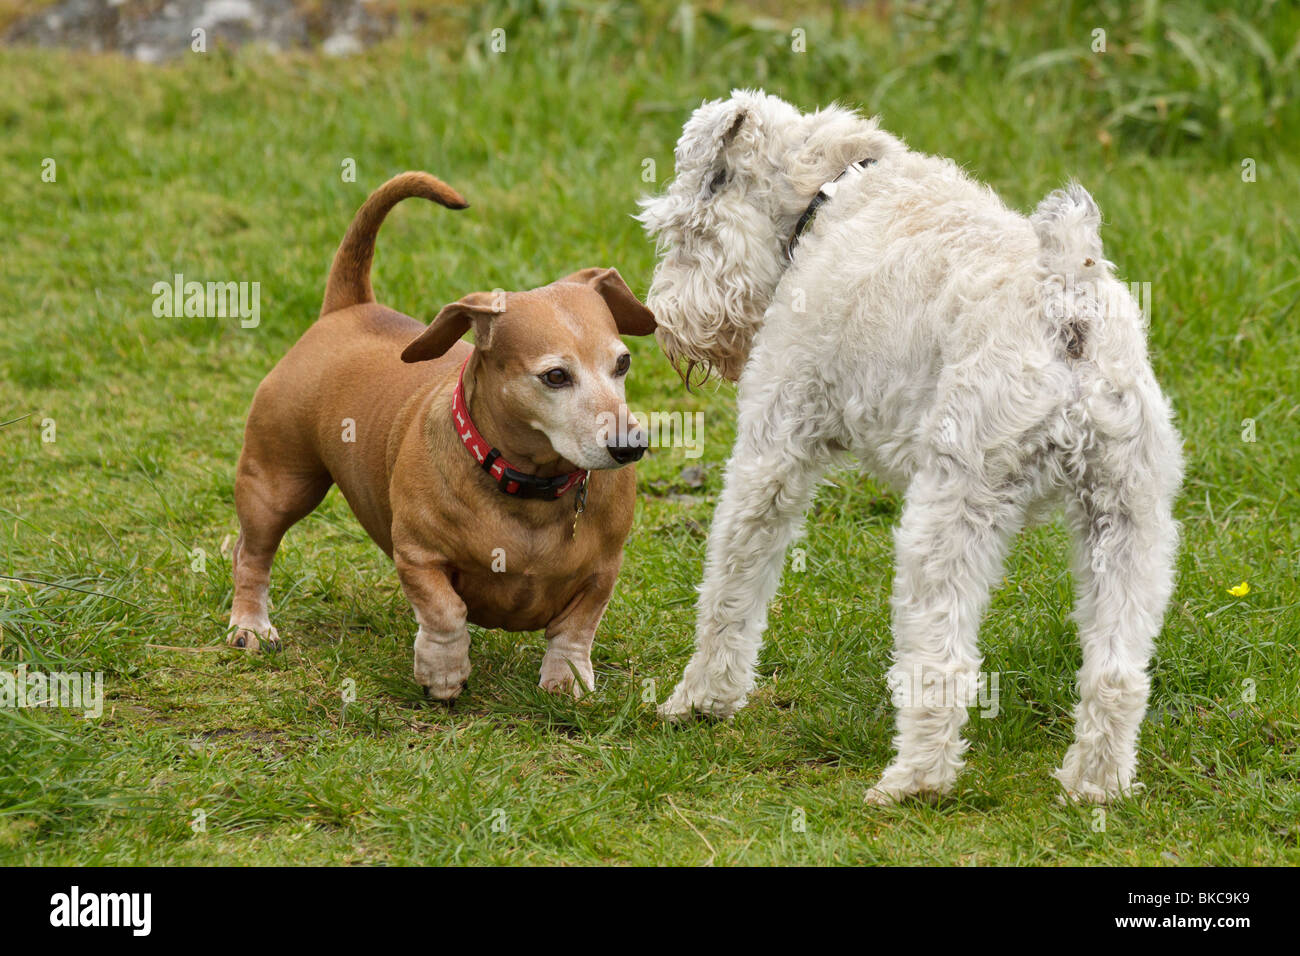 Two dogs interacting with each other-Victoria, British Columbia, Canada. - Stock Image